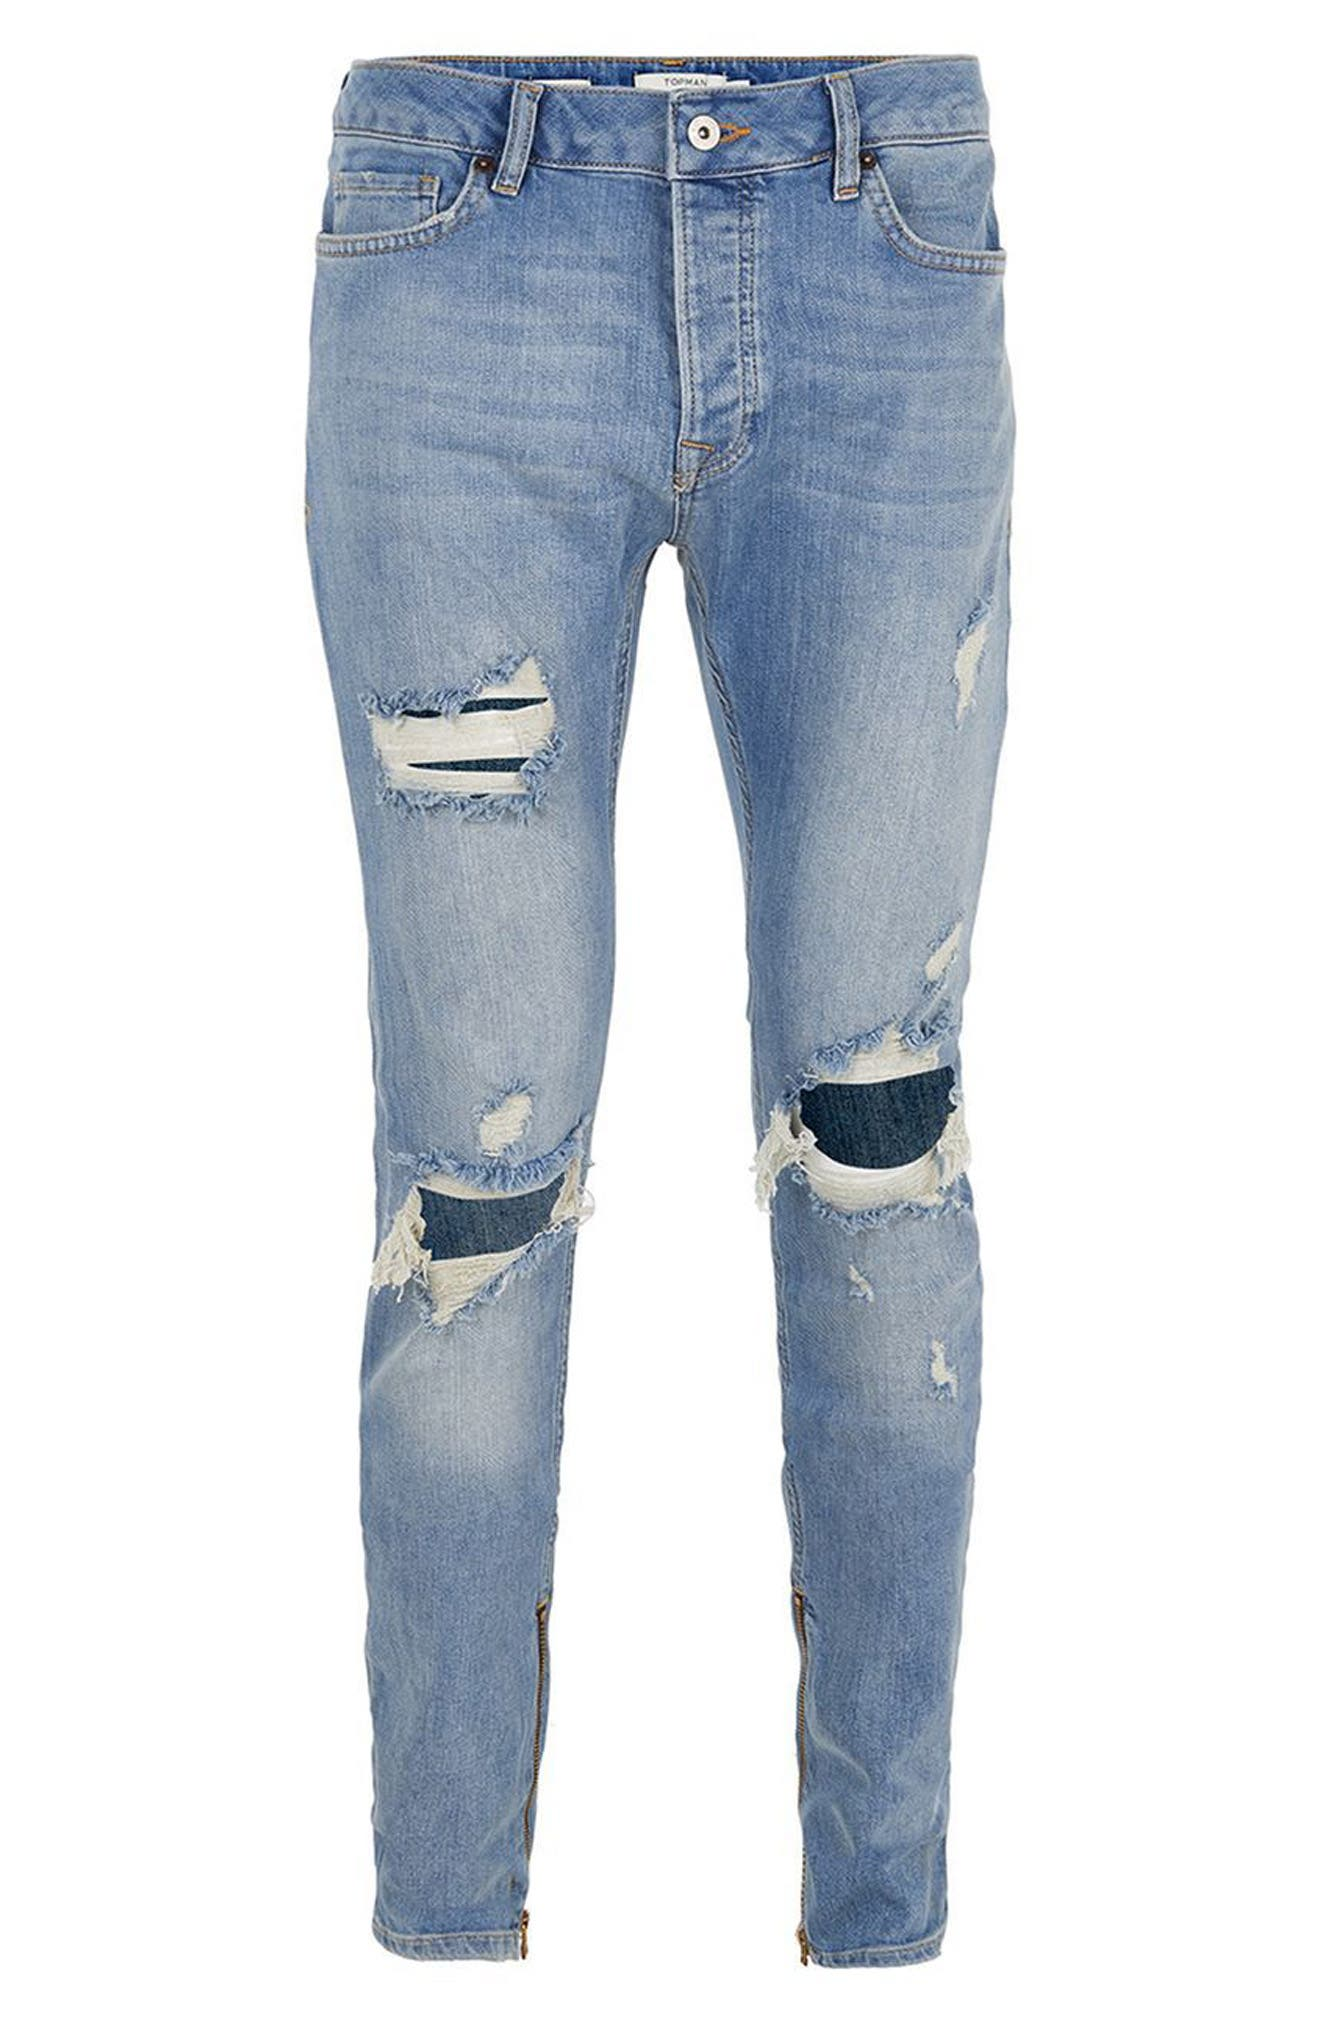 Destroyed Stacker Jeans,                             Alternate thumbnail 4, color,                             Blue